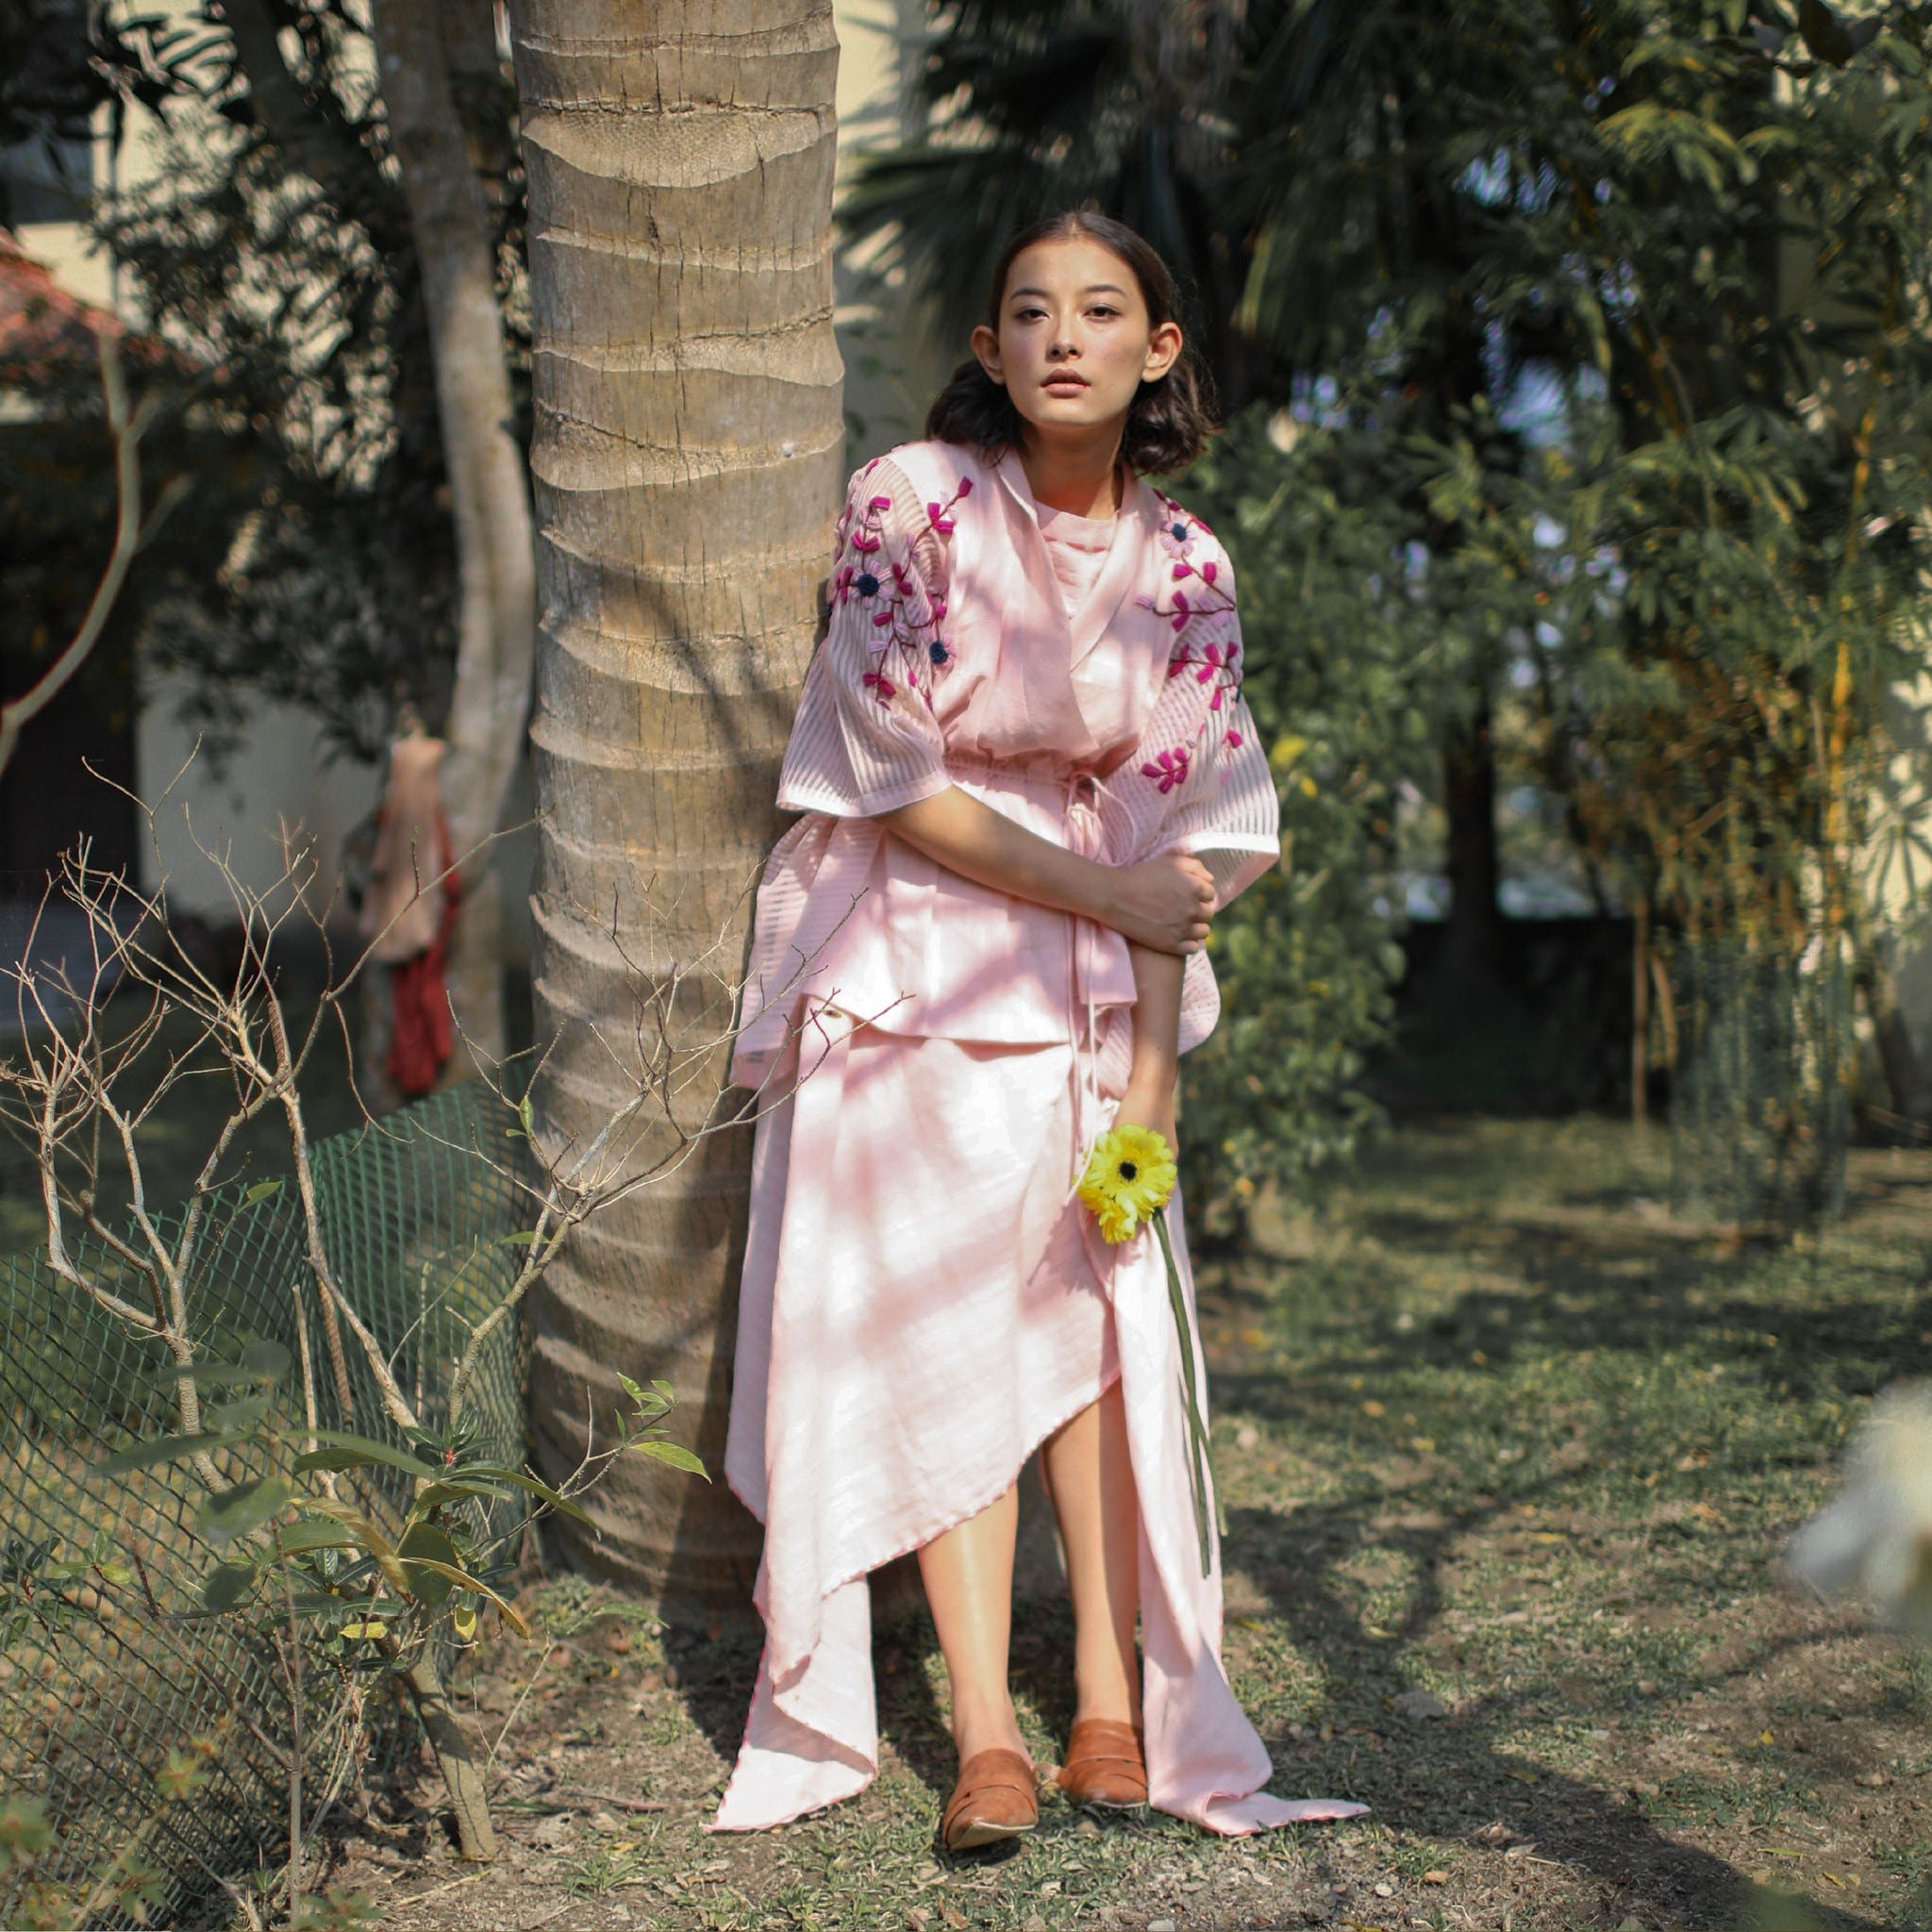 People in nature,Long hair,Peach,Sandal,Wire fencing,Day dress,Mesh,One-piece garment